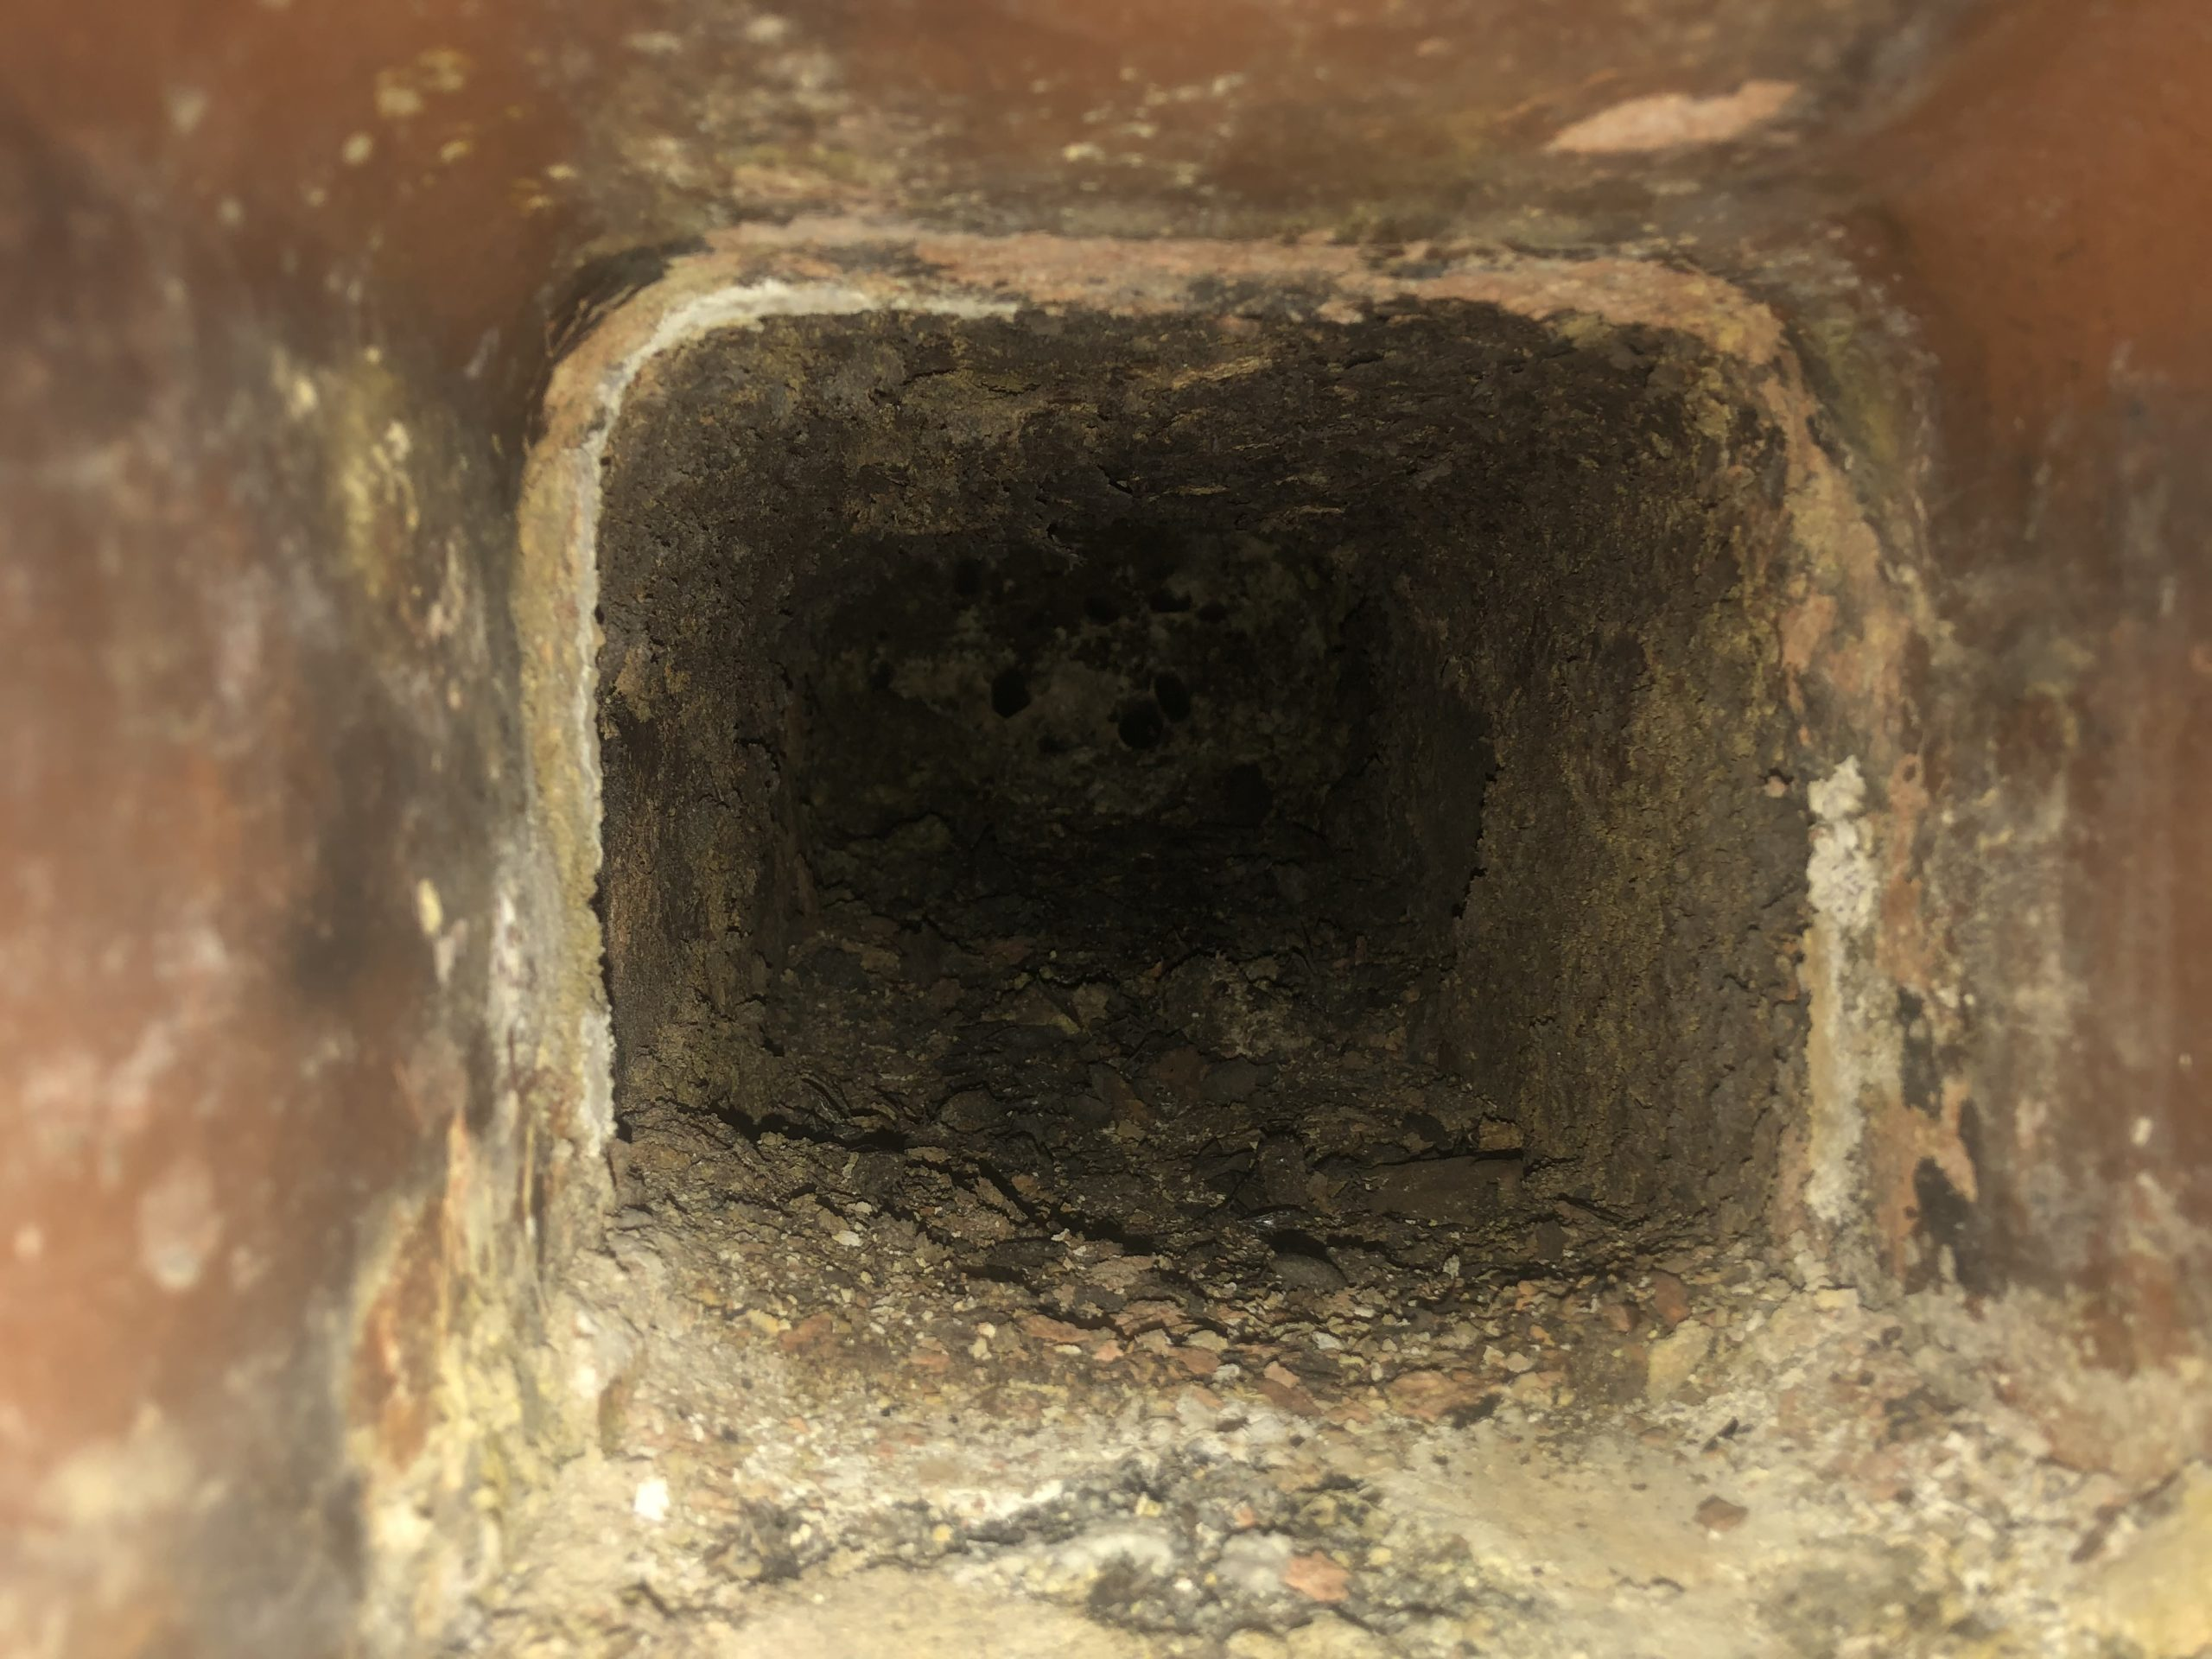 Creosote build-up in chimneys can lead to fires, which is why it's important to have chimney swept once a year.